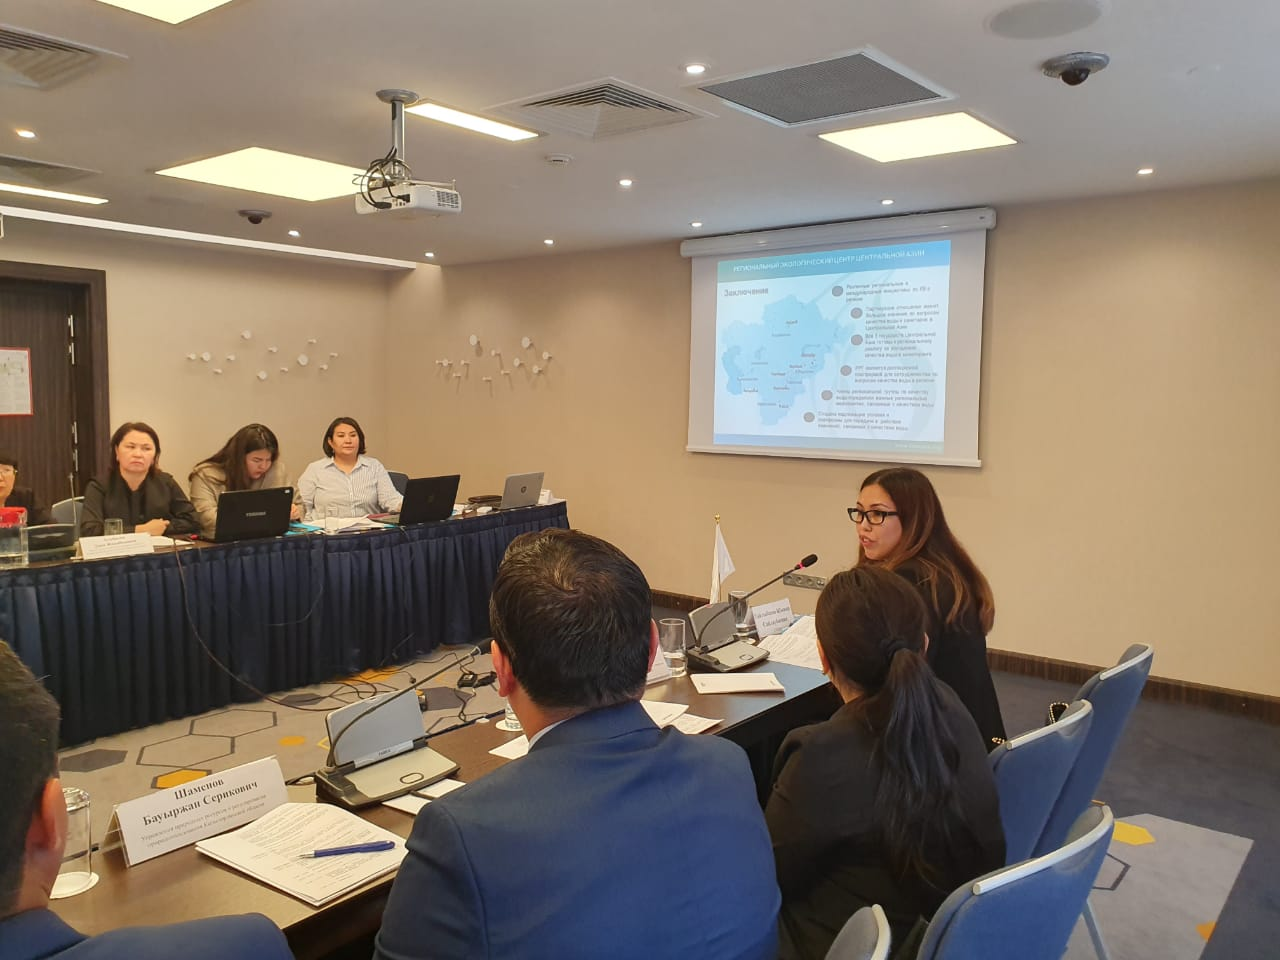 The 2nd meeting of the Kazakh-Uzbek joint working group on environmental protection and water quality of the Syrdarya river basin